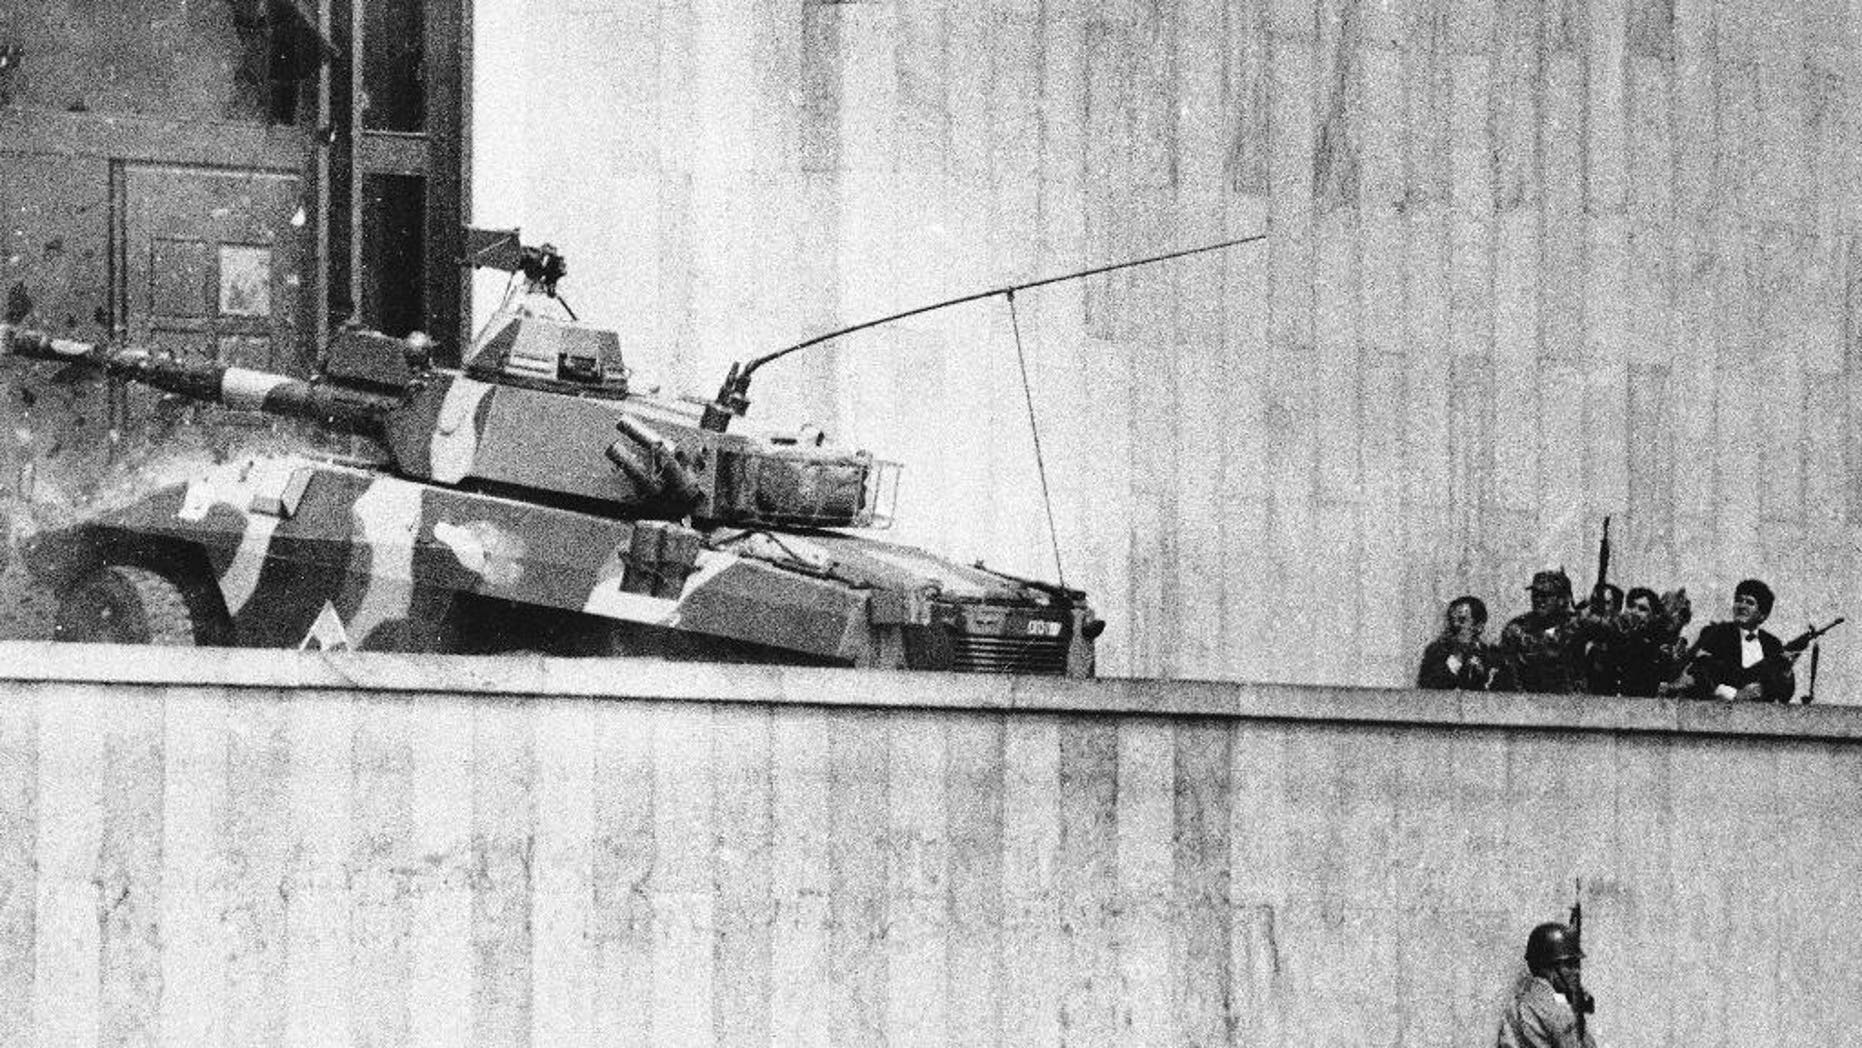 FILE - In this Nov. 6, 1985, file photo, an armored vehicle crashes through the two story wooden doors at the front entrance to the Palace of Justice in Bogota, as soldiers and policemen prepared to rush inside. The Inter-American Court of Human Rights has charged Colombia, Wednesday Dec. 10, 2014, with human rights violations in connection with the disappearance of 10 people in 1985's hostage crisis at the Supreme Court. The court ordered Colombia to provide relatives with compensation and psychological assistance, publish its sentence in national news media, and continue investigating the case. In addition to those disappeared, more than 100 people were killed in the government operation to retake the building, including all rebels and many judges. (AP Photo/Carlos Gonzalez, File)